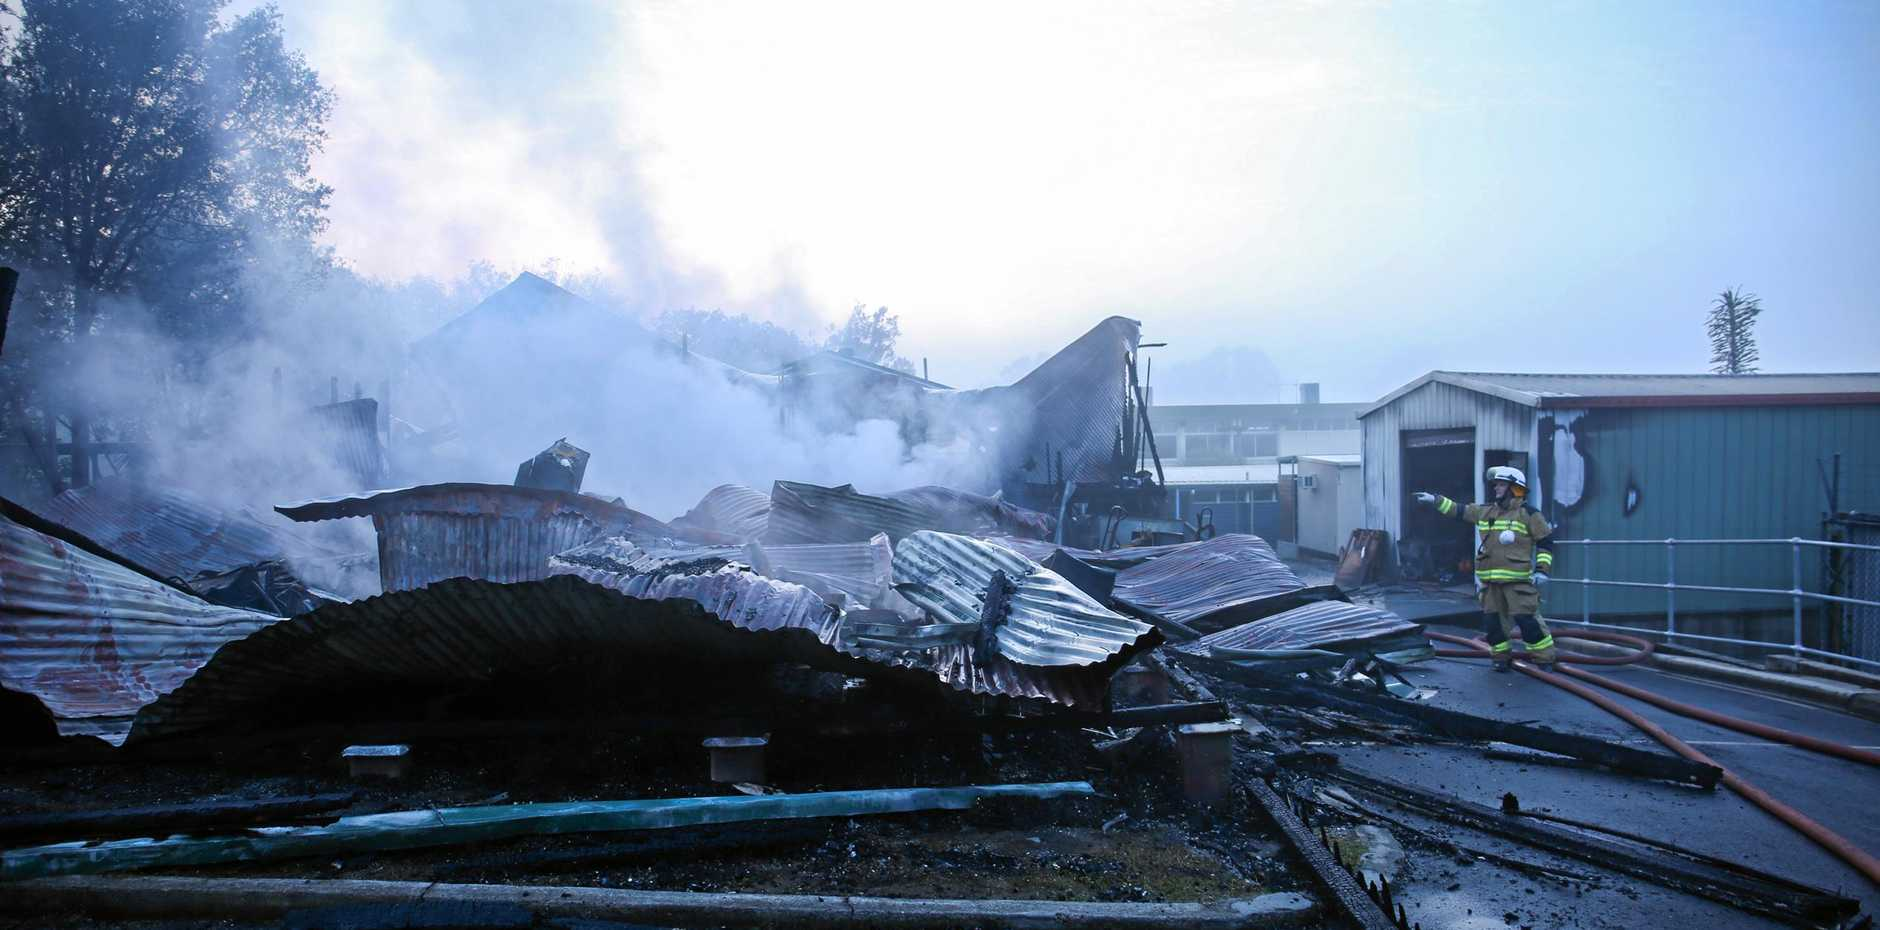 The aftermath of the fire that tore through One Mile State School in June last year.